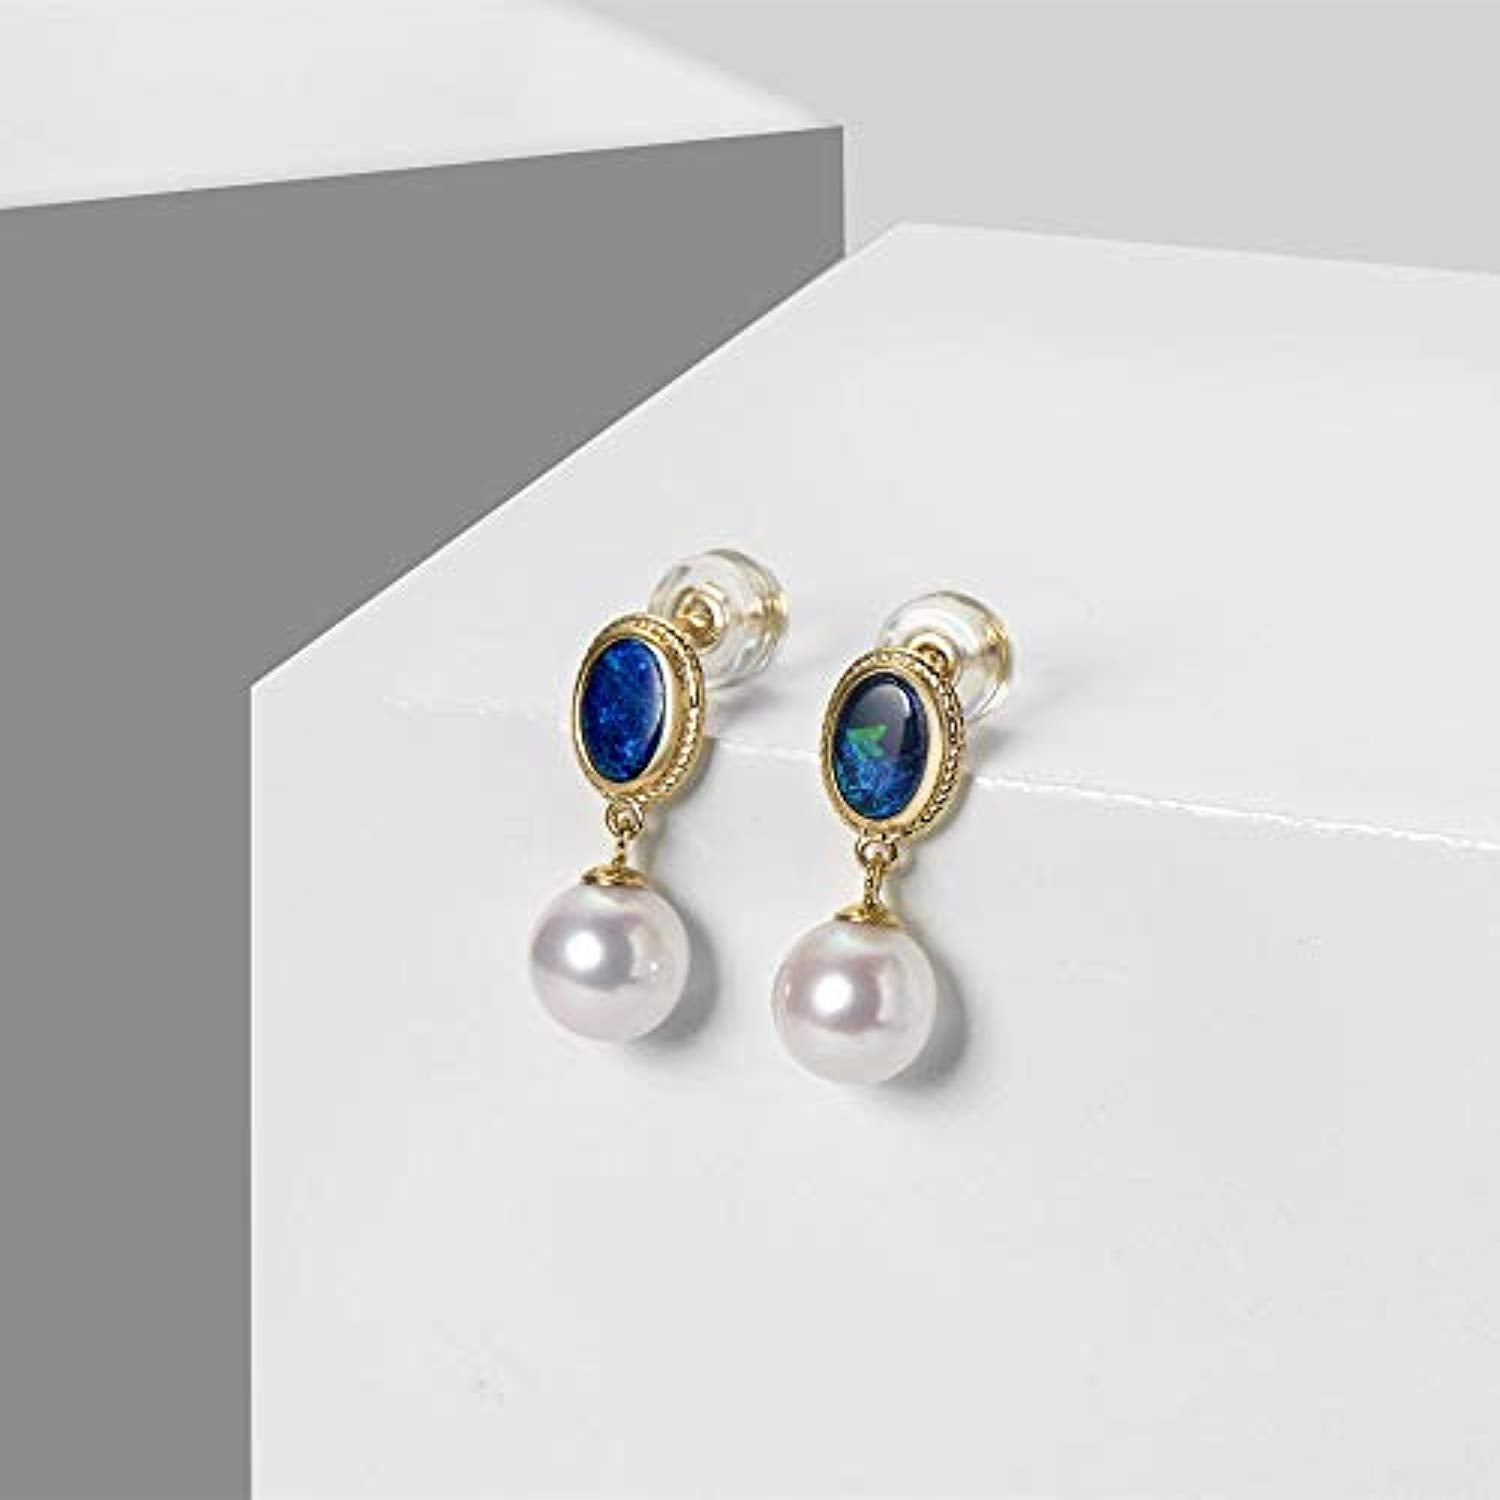 18K Yellow Gold  Oval Real Genuine Natural Fire Opal Freshwater Pearl Dangle Earrings Elegant October Birthstone Fine Jewelry Gift for Women Girls